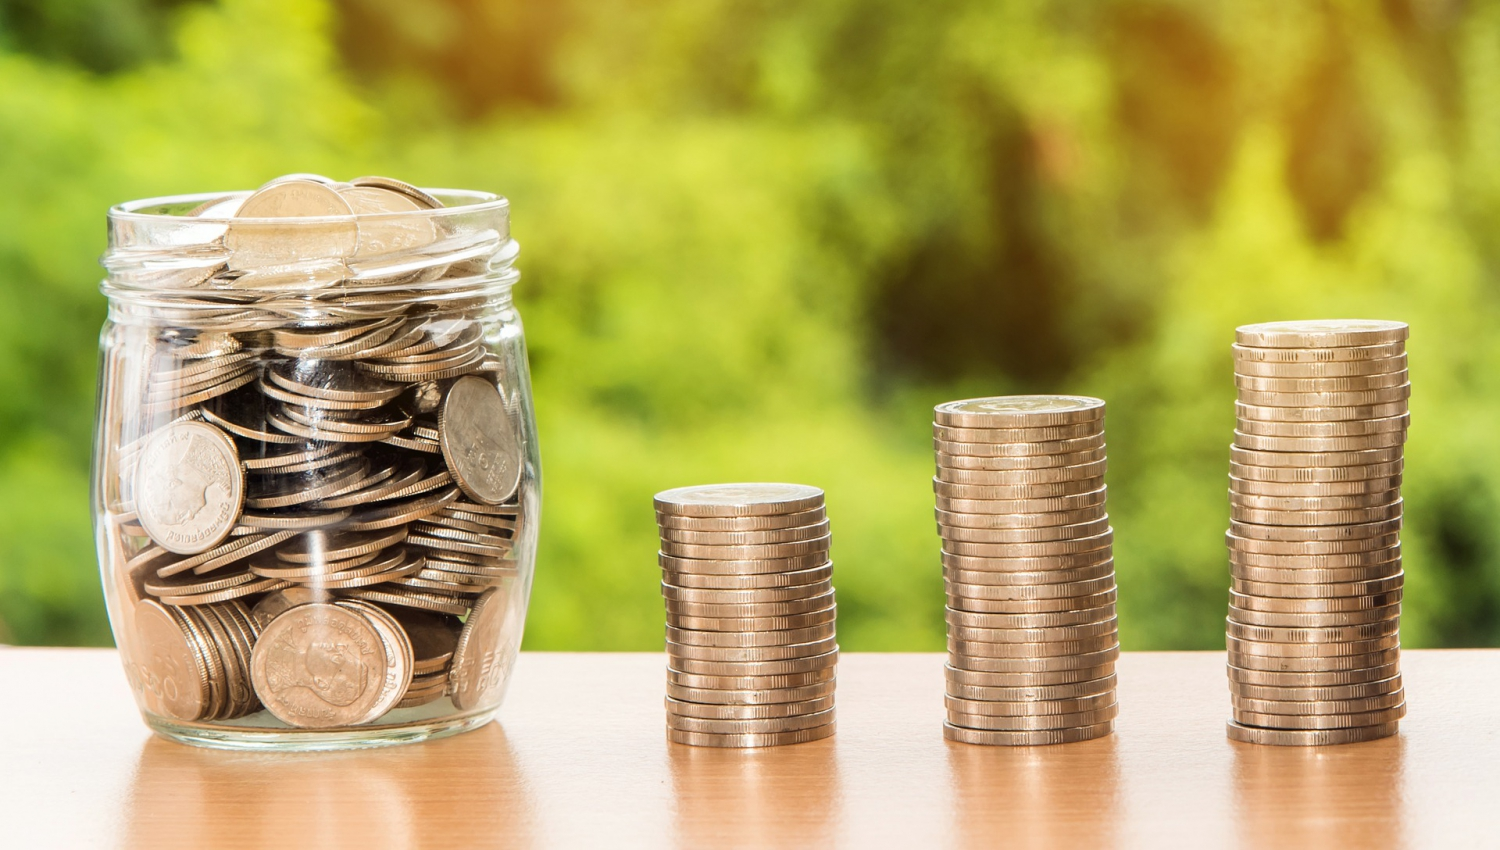 How are your savings protected? Insights by Blevins Franks